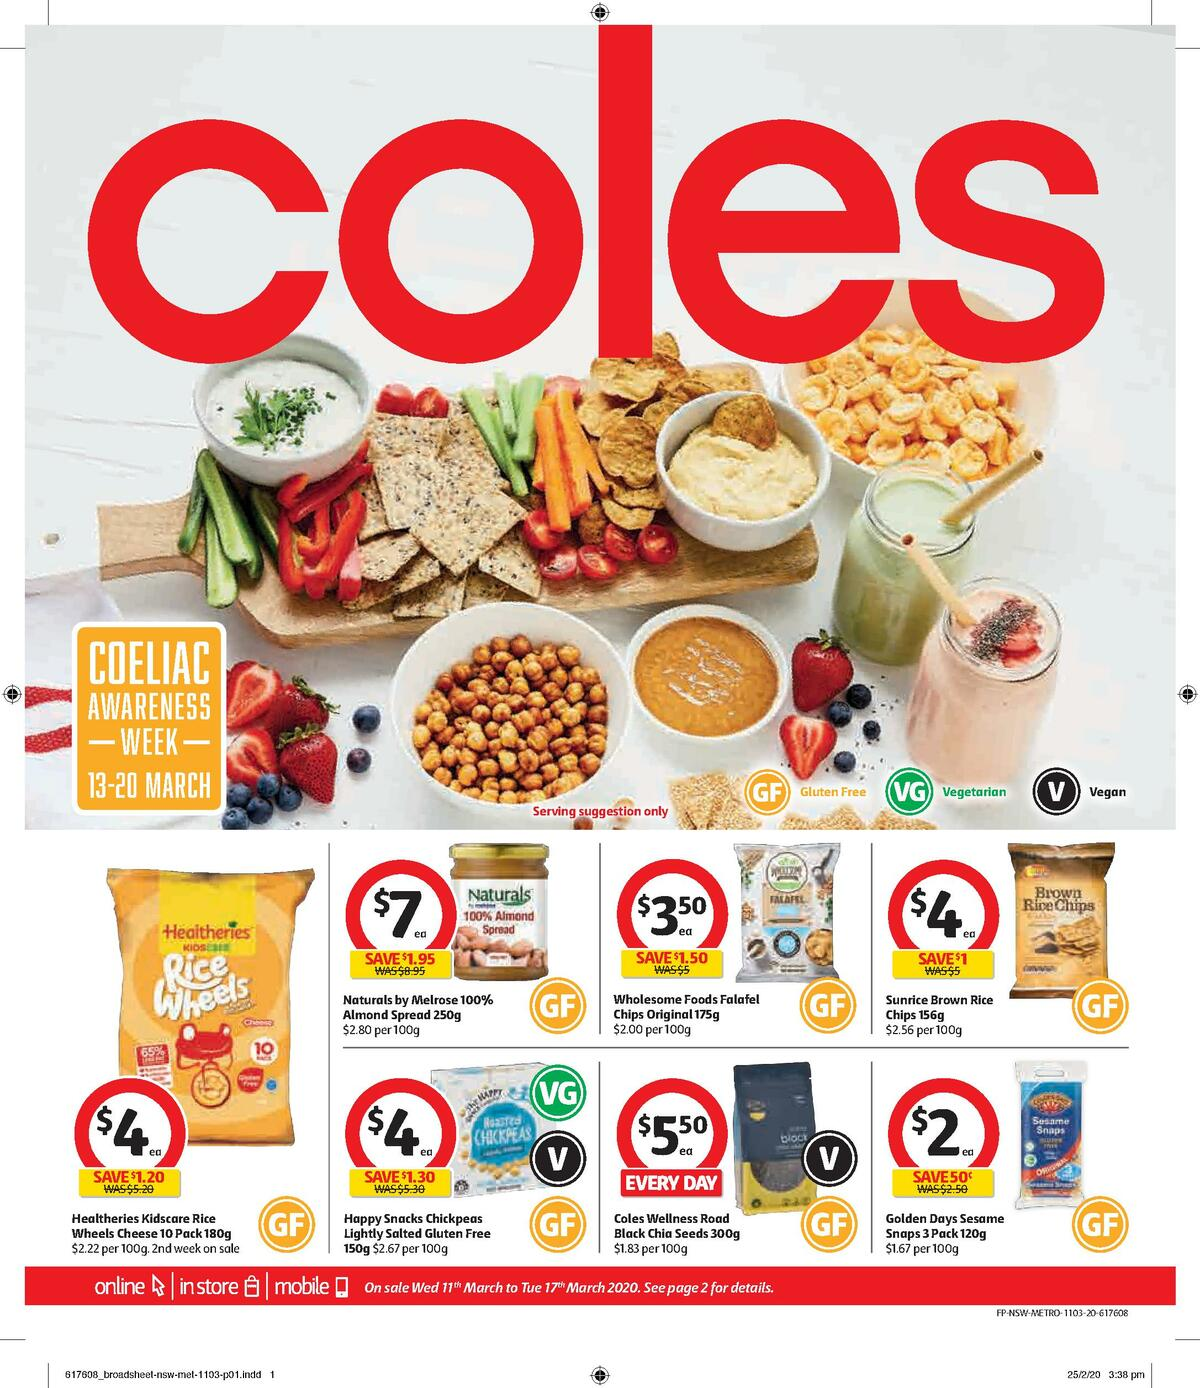 Coles Coeliac Awarness Week Catalogues from March 11